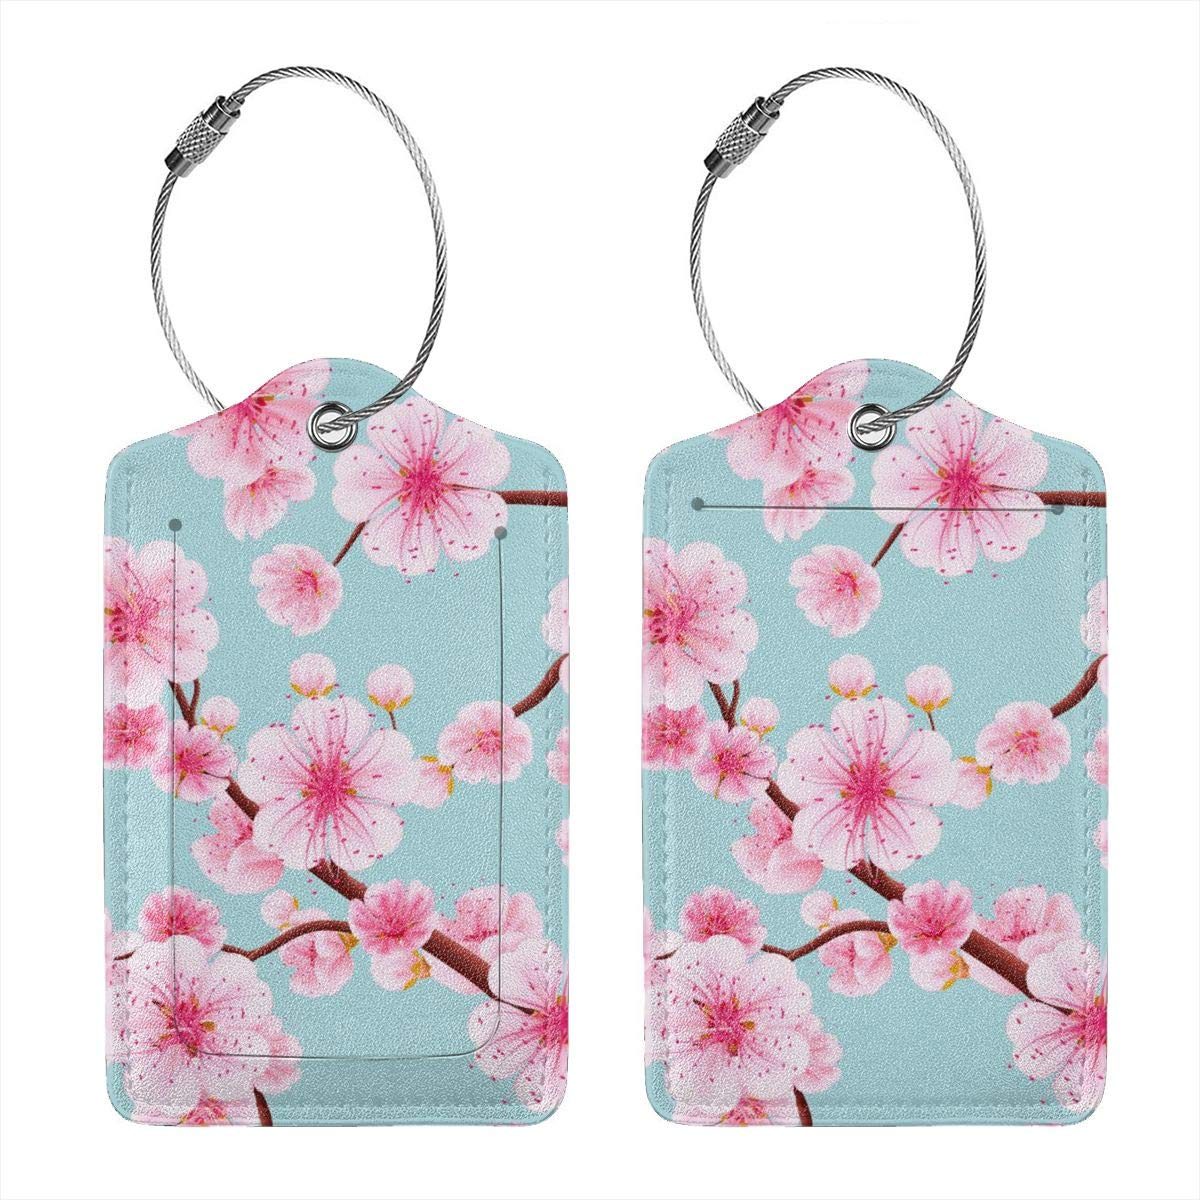 GoldK Pink Cherry Blossom Leather Luggage Tags Baggage Bag Instrument Tag Travel Labels Accessories with Privacy Cover